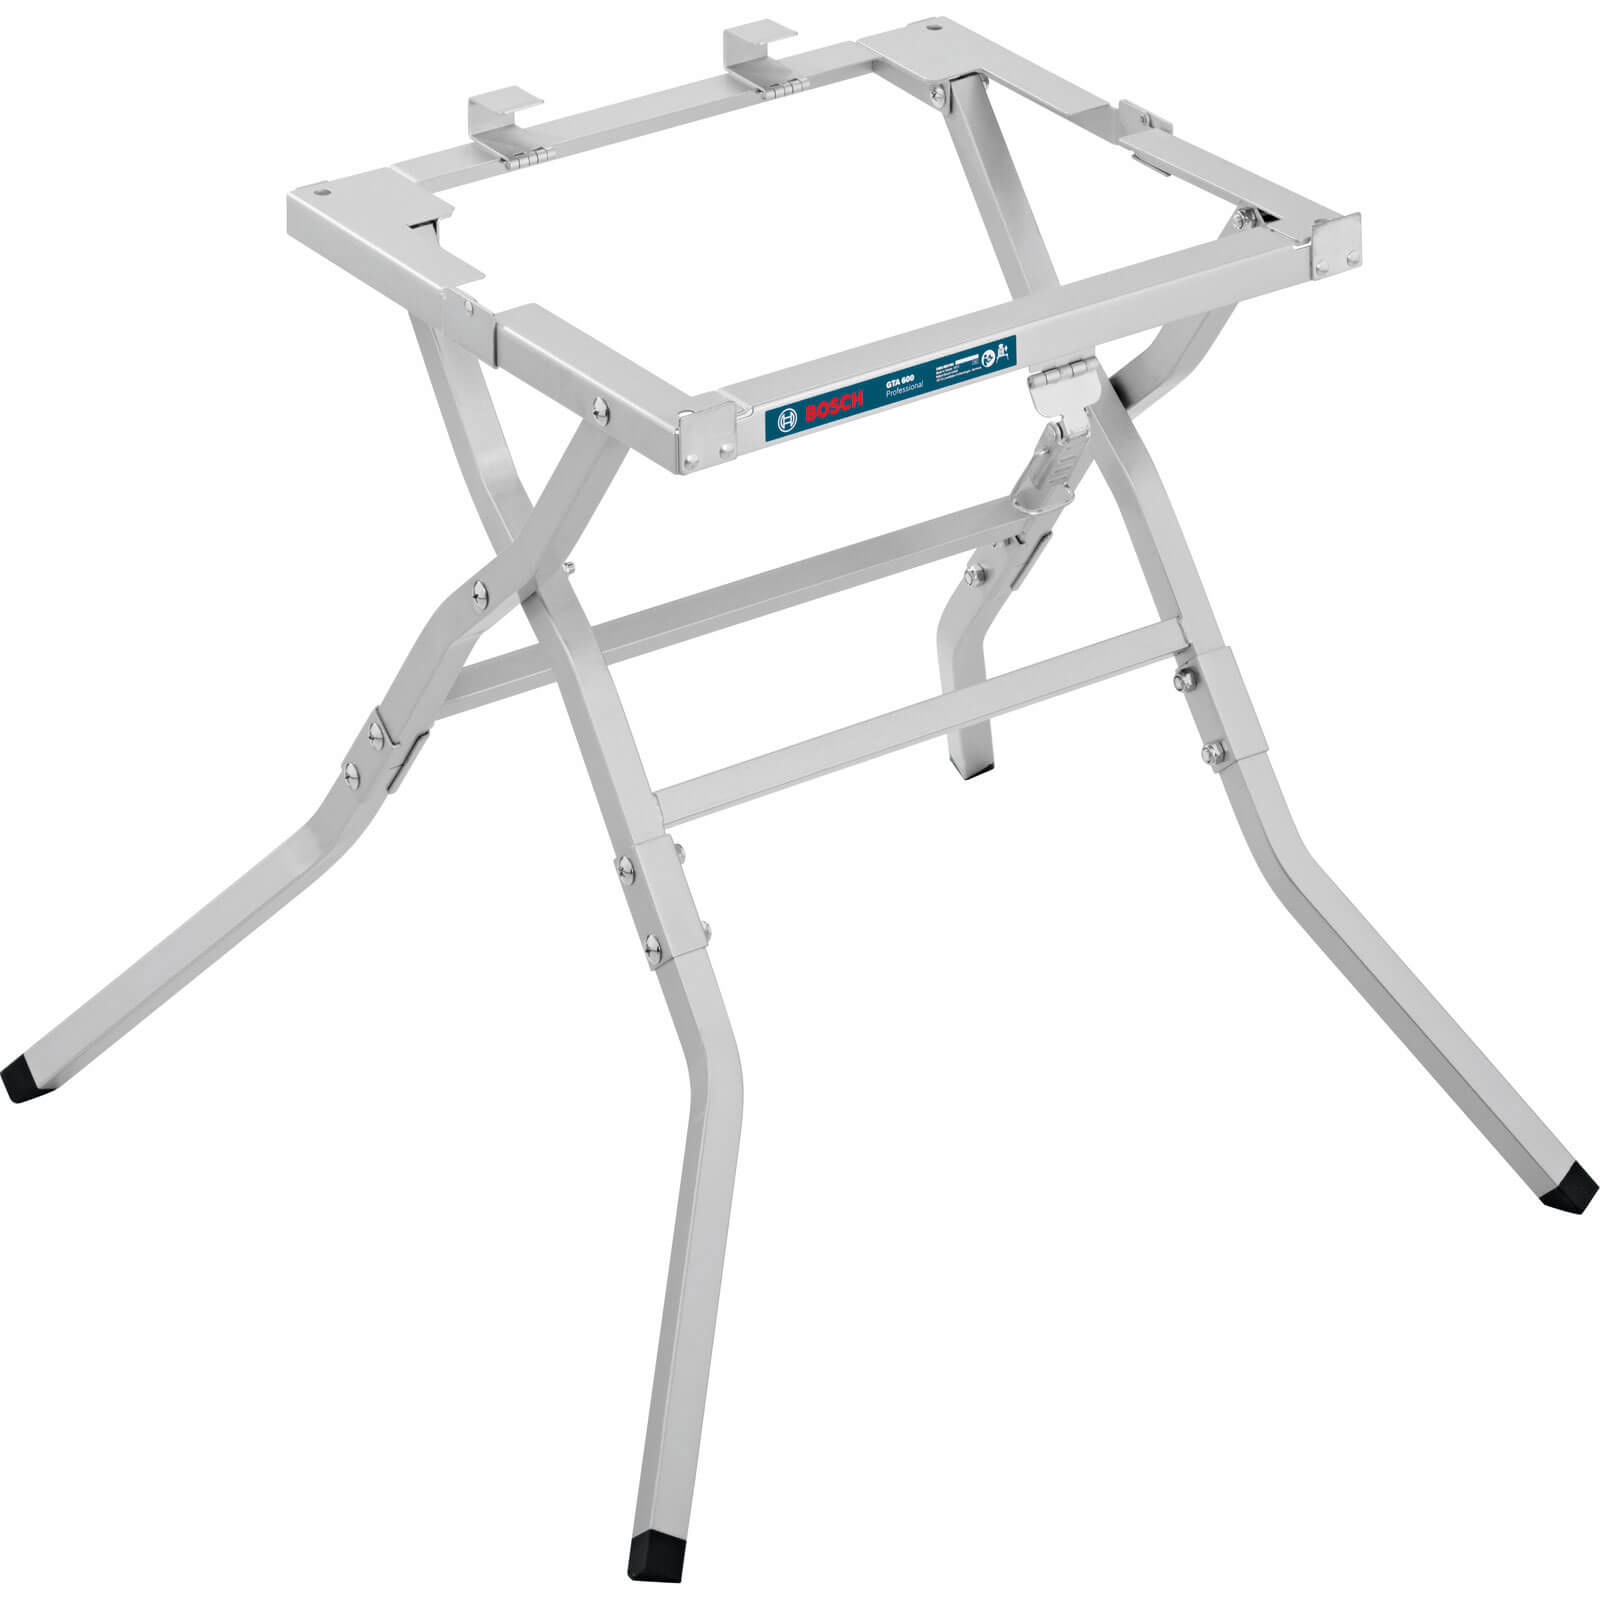 Bosch GTA 600 Stand for GTS 10 J Table Saws